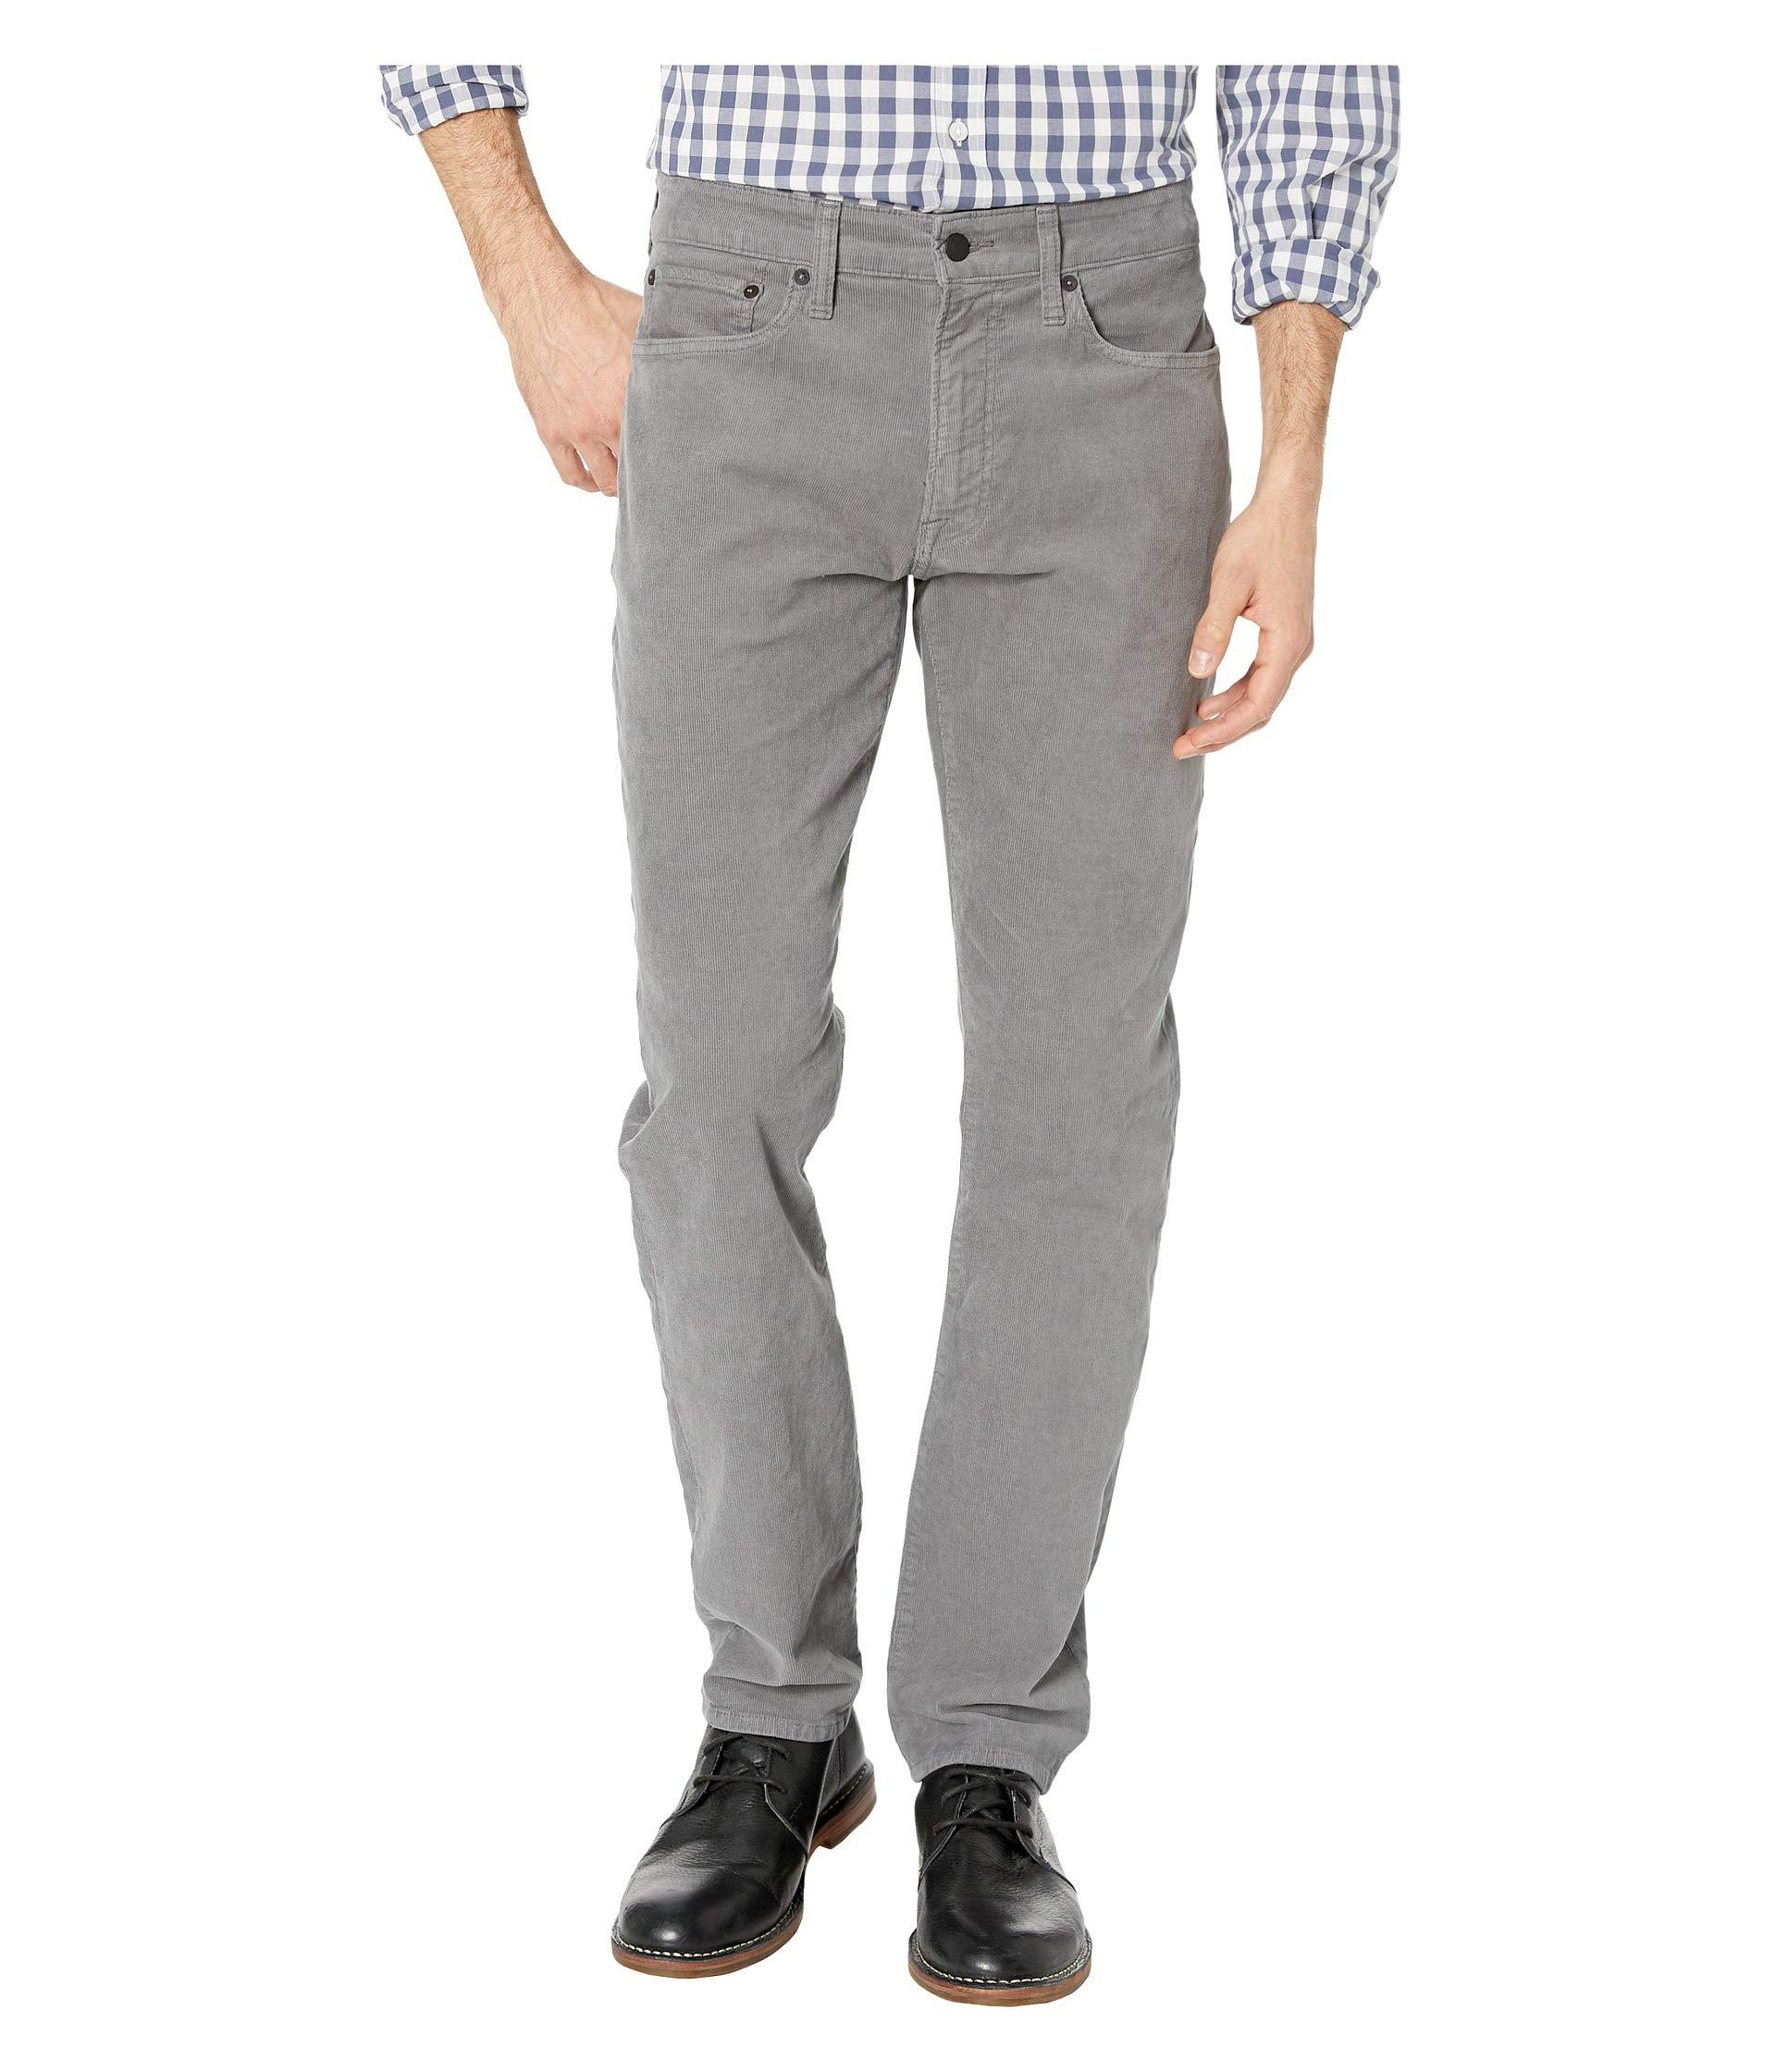 3b59a0a813af Lyst - Lucky Brand 121 Heritage Slim Jeans In Gargoyle in Gray for ...